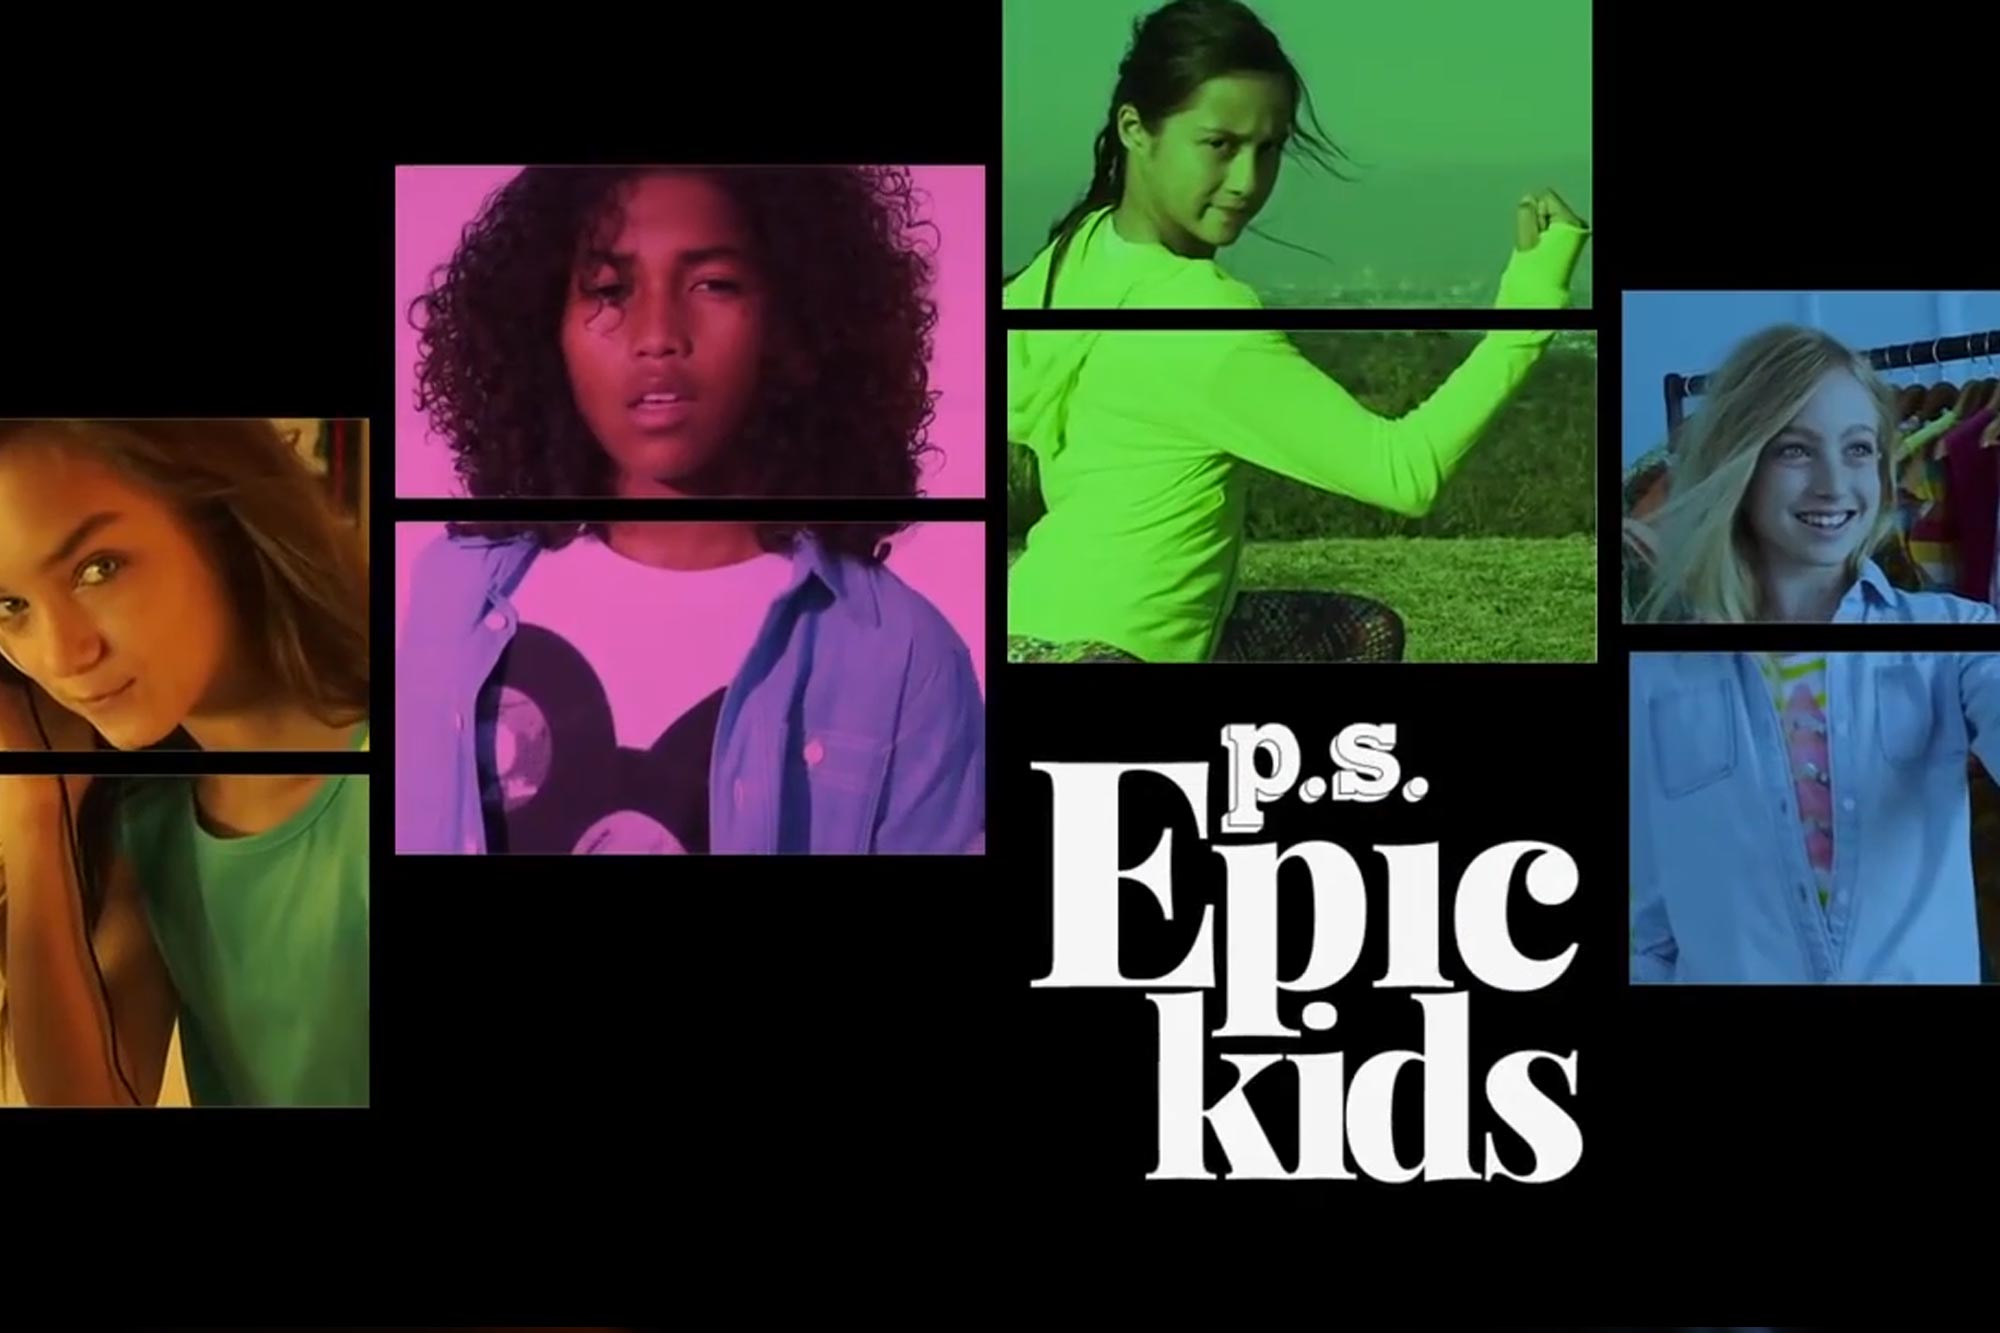 P.S. from Aéropostale — Epic Kids